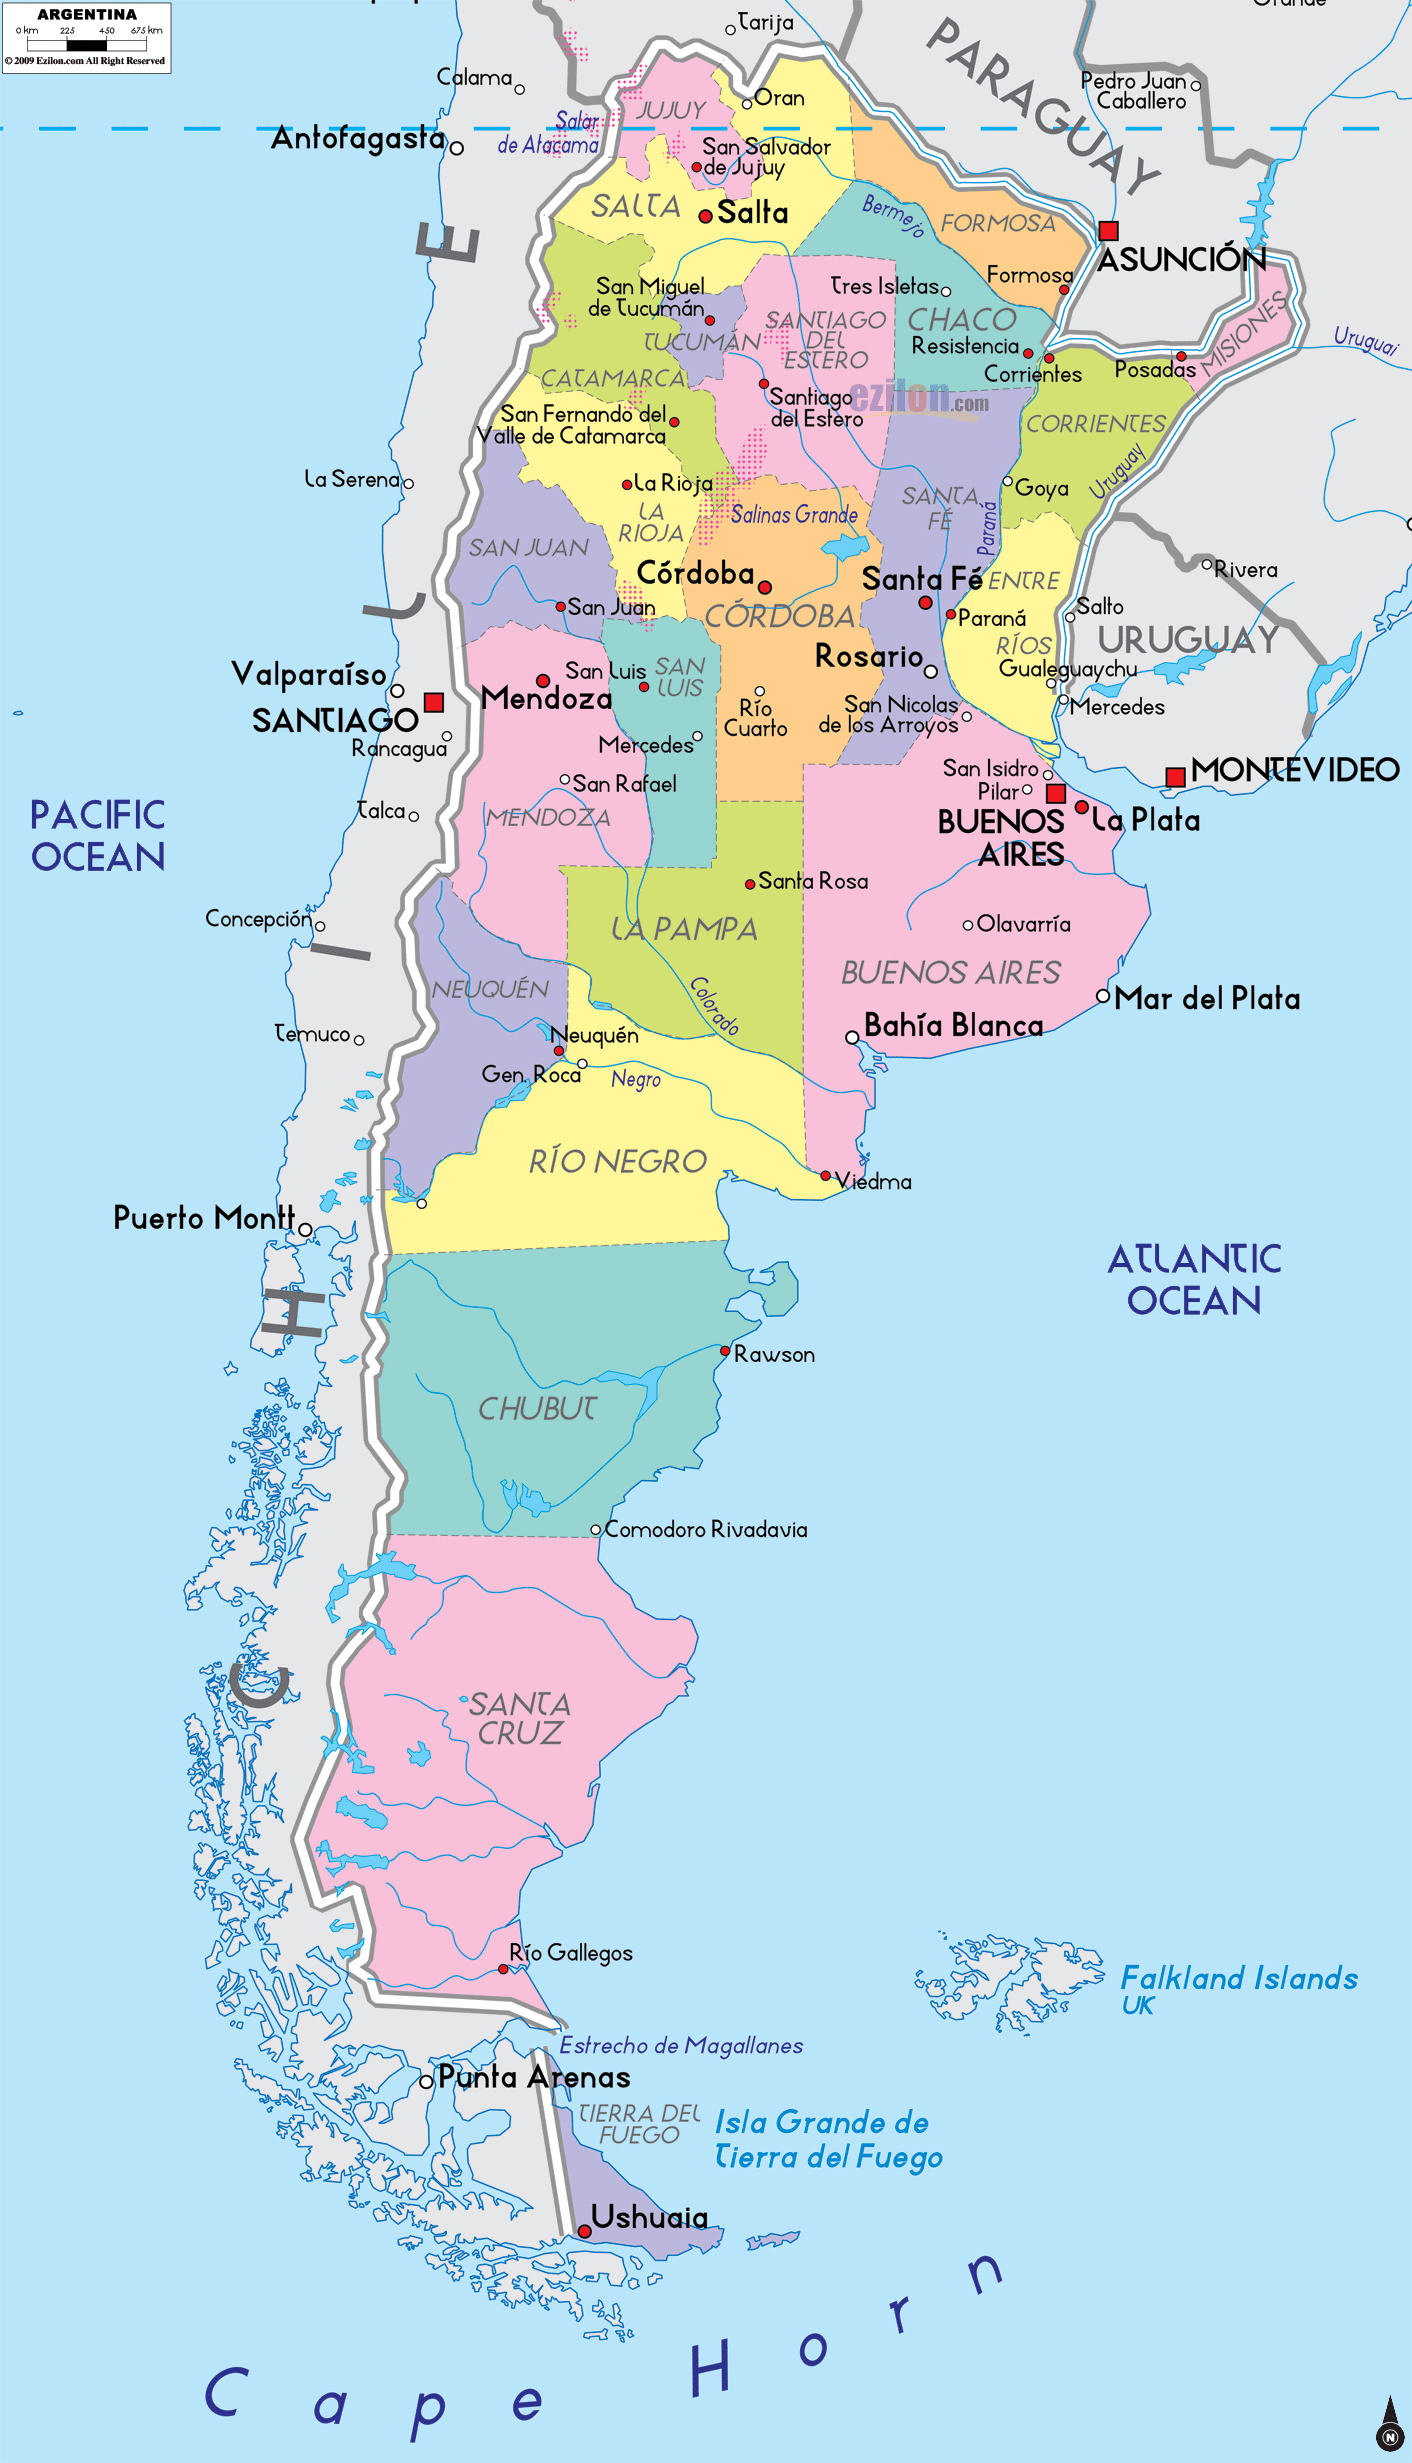 Large political and administrative map of Argentina with major